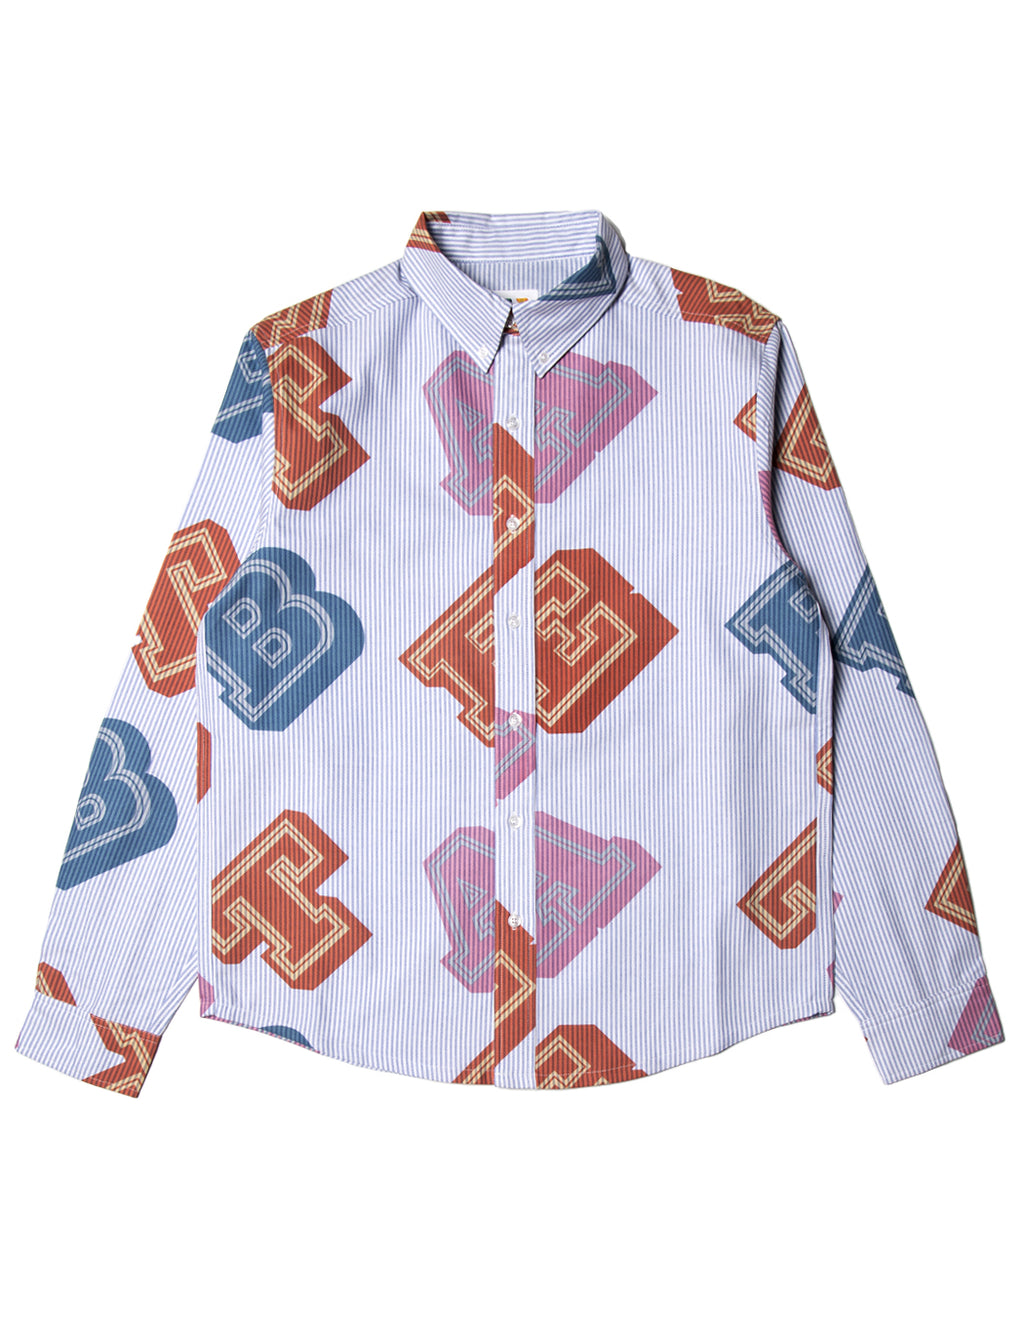 All-Over Type Pinstripe Shirt - Blue/White - Eine London by Ben Eine